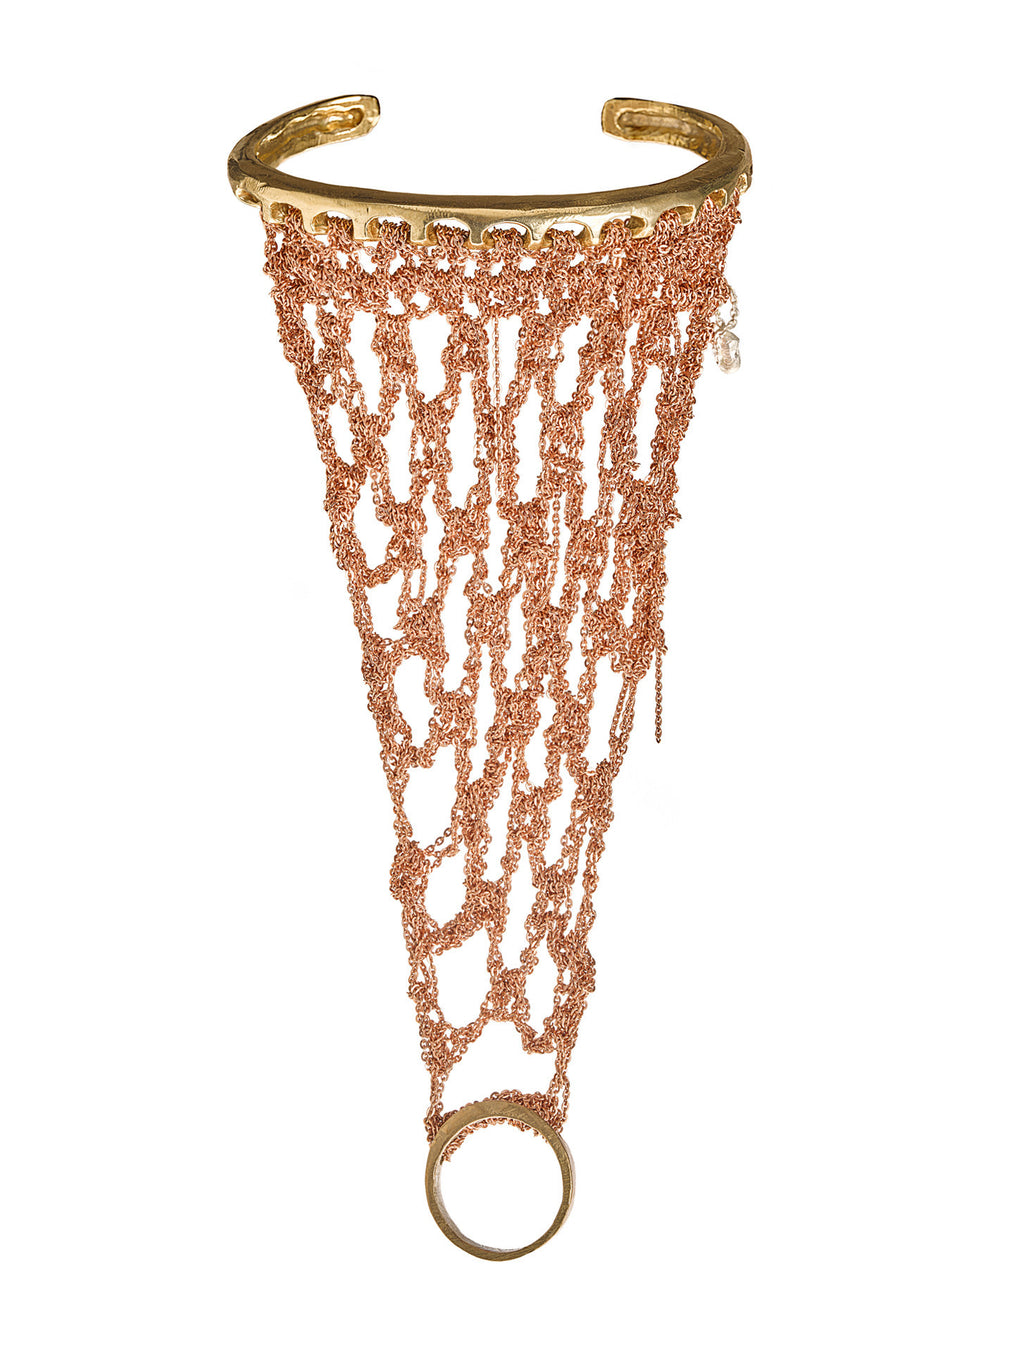 Slave Bracelet in Rose Gold with Brass Hardware